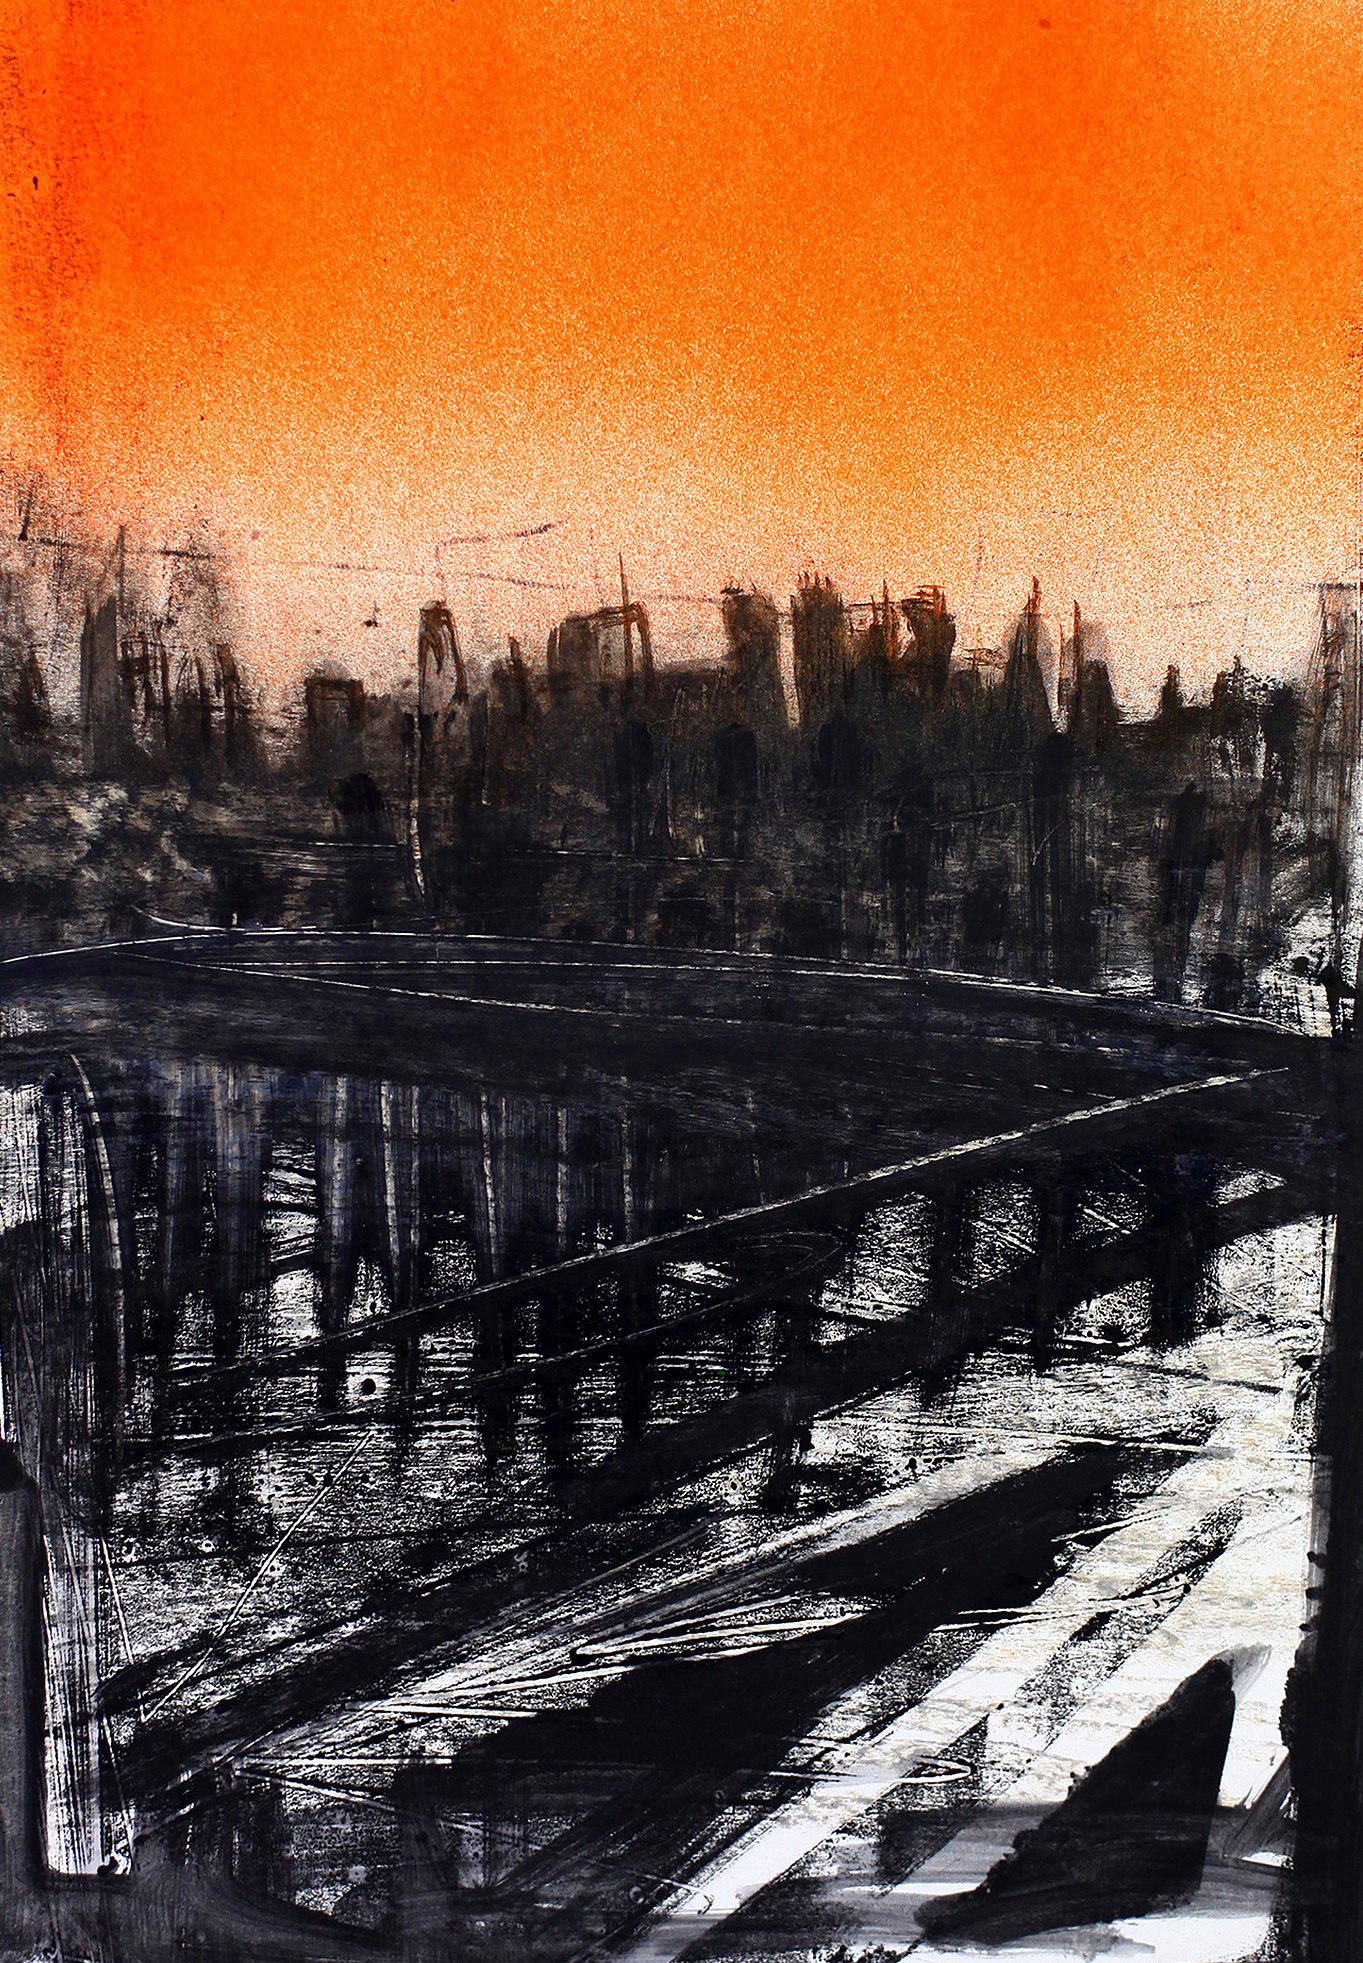 'From the Eastside', 2009, spray paint and monoprint on paper, 40 x 50 cm